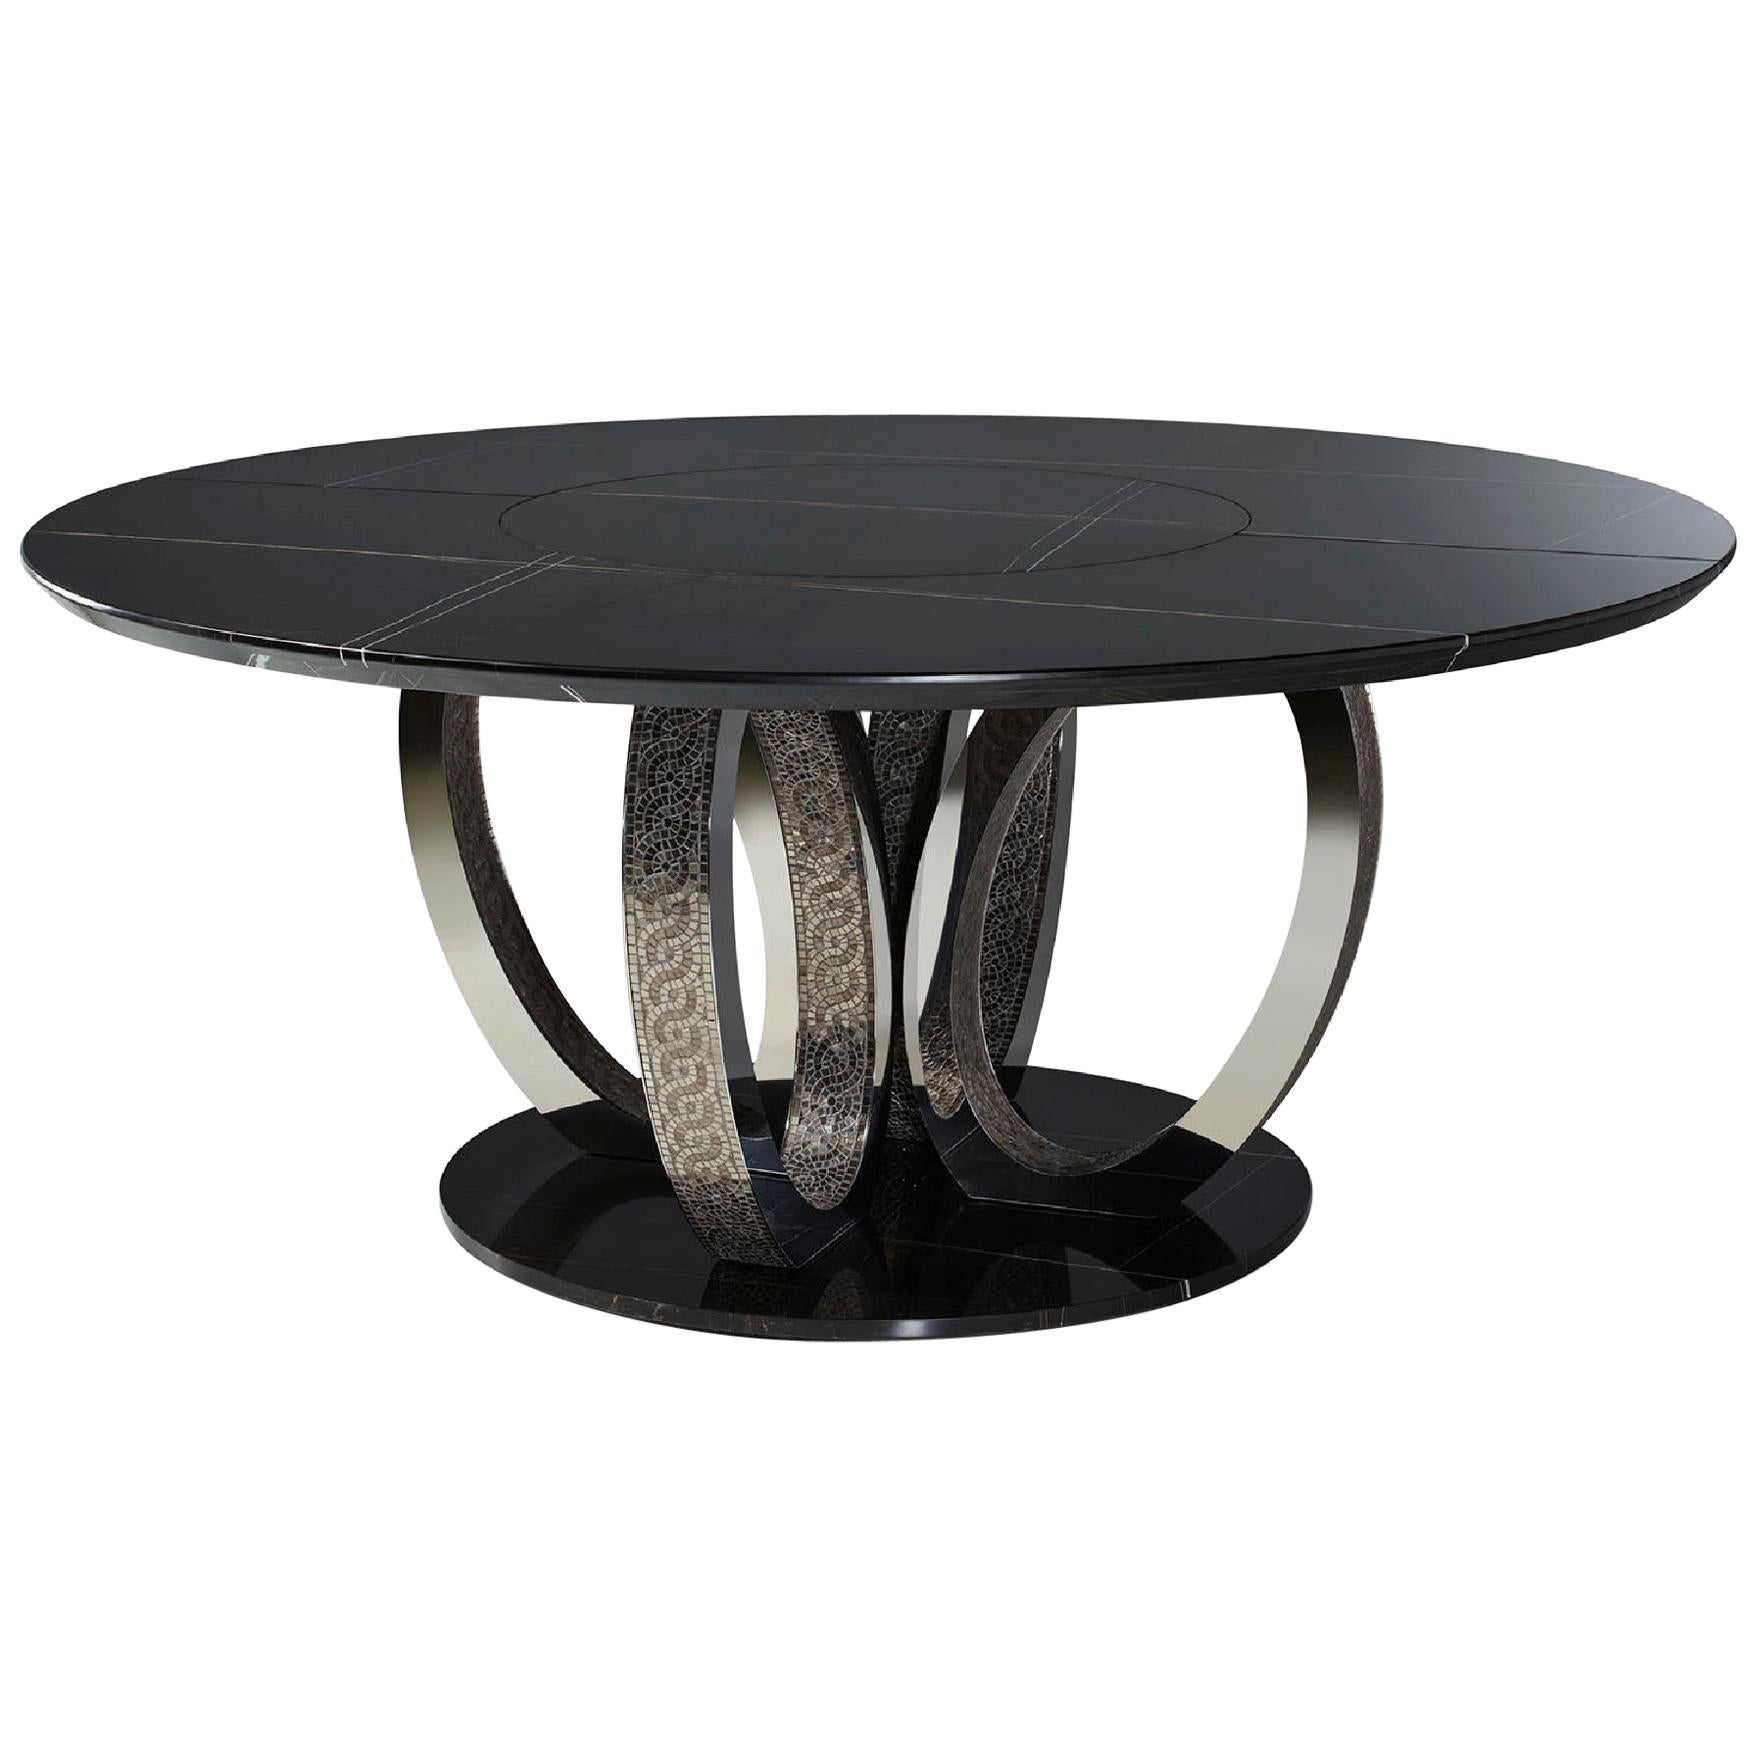 Beautiful Table Base and Top in Marble Rings in Bronze or Polished with Mosaic